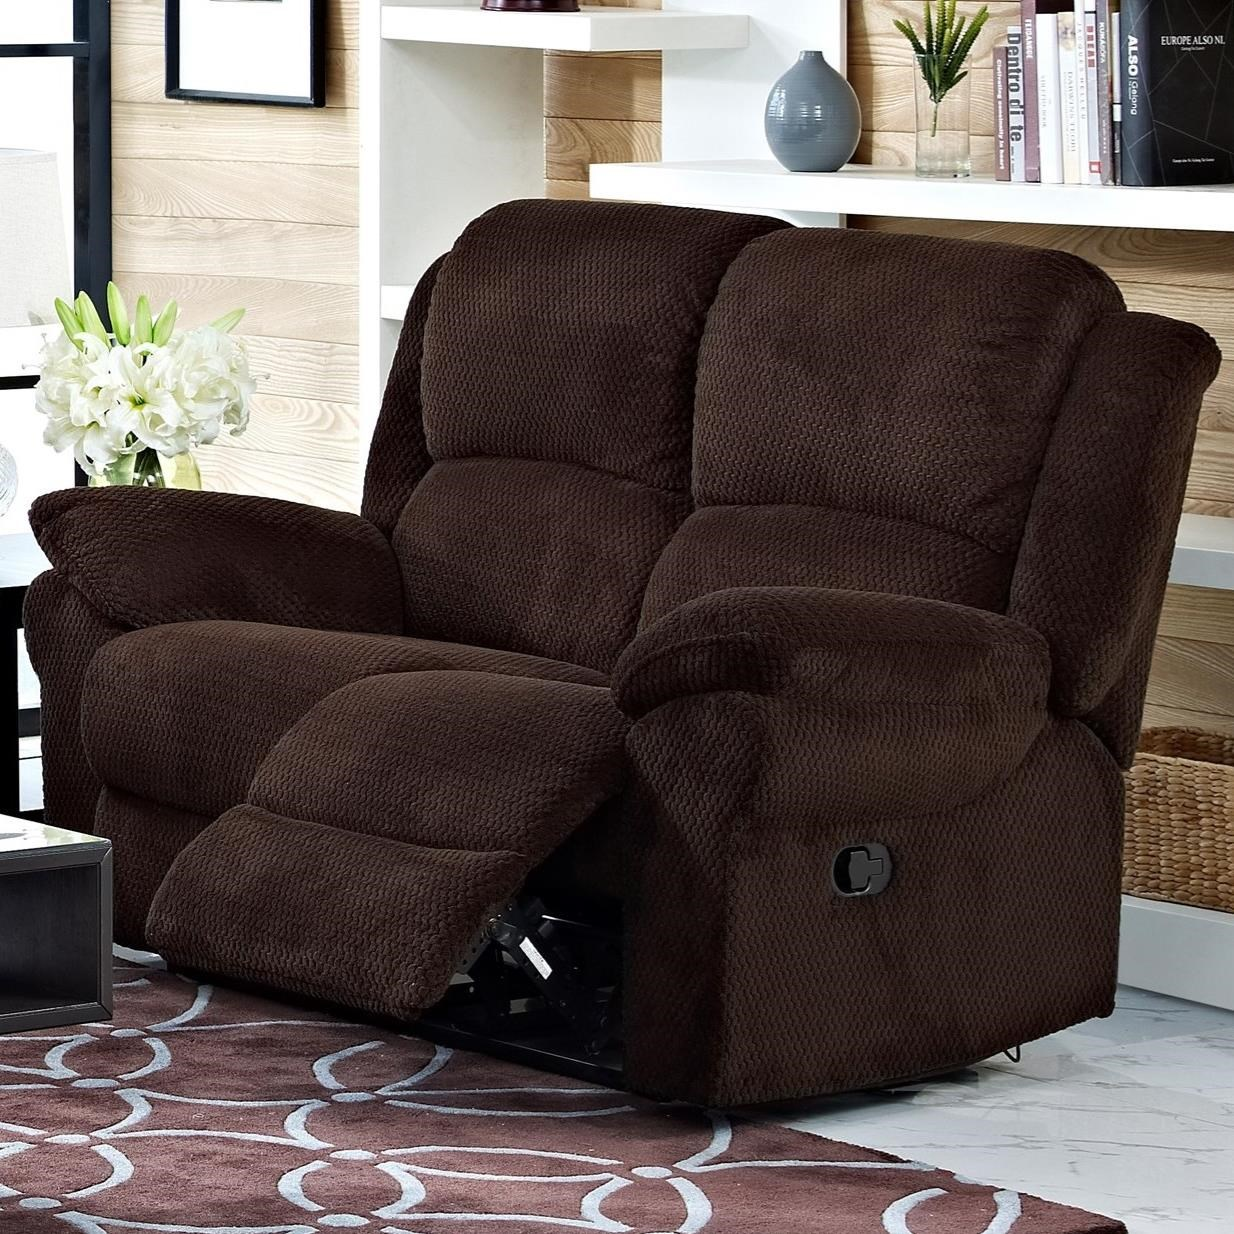 New Classic Cabot Reclining Loveseat - Item Number: 20-2222-20-DTV